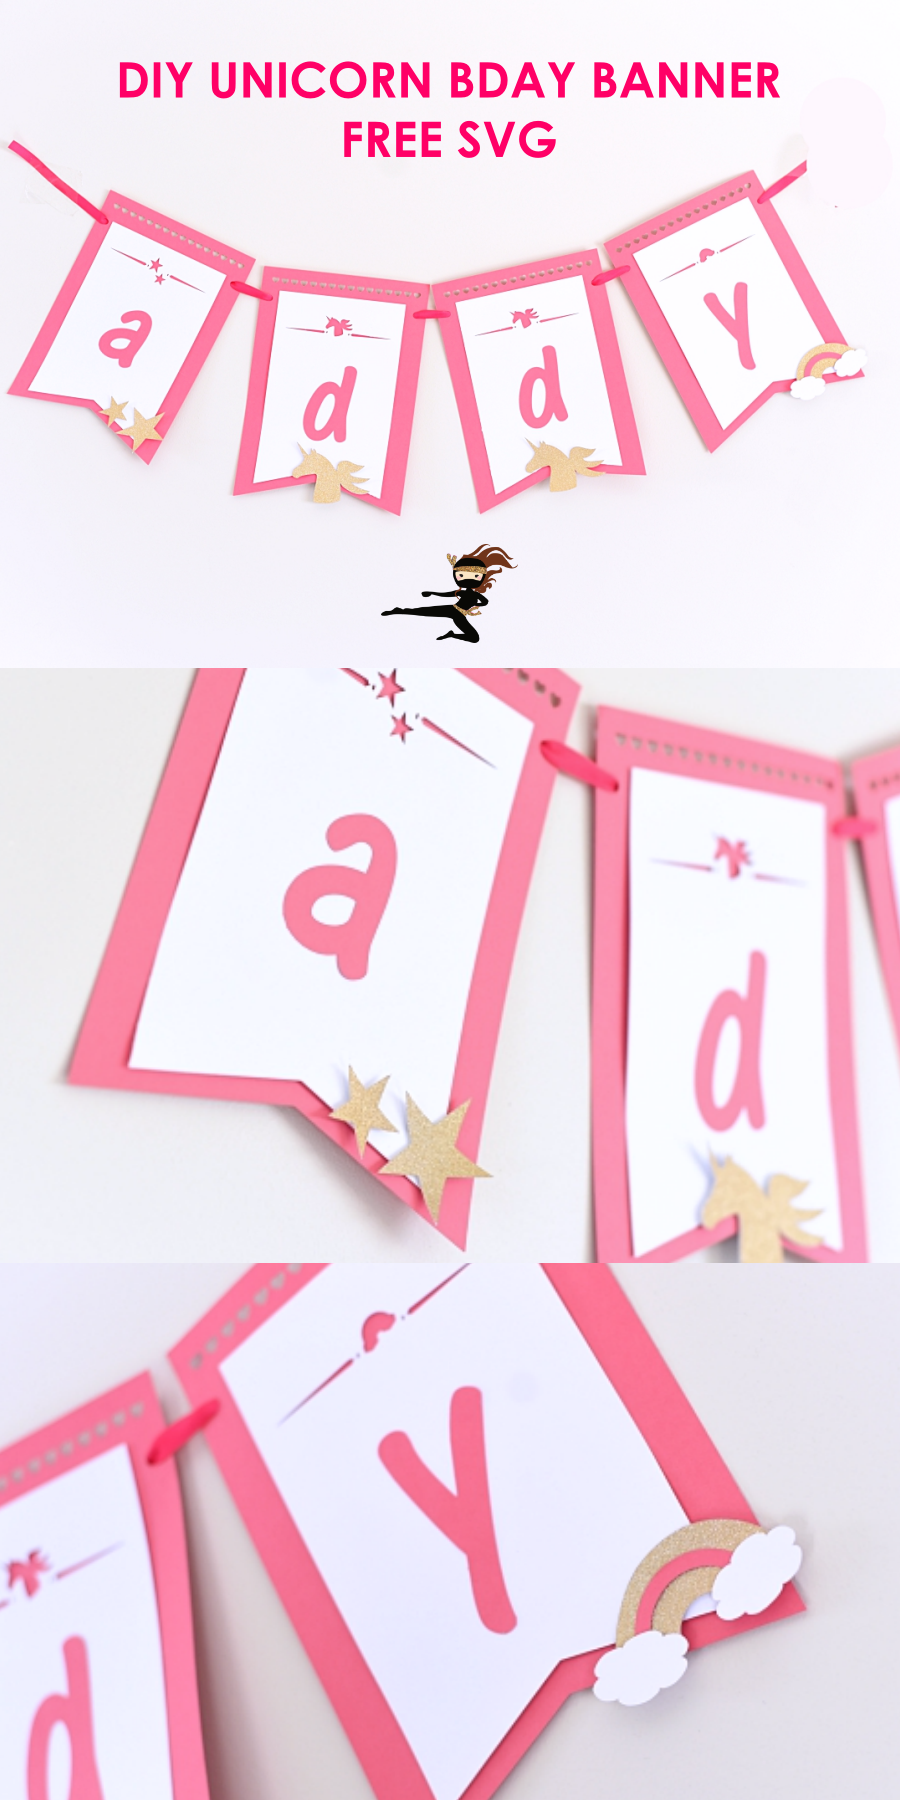 Learn to make your very own Unicorn birthday banner with a FREE SVG file. This is a great beginner Cricut project for birthdays.